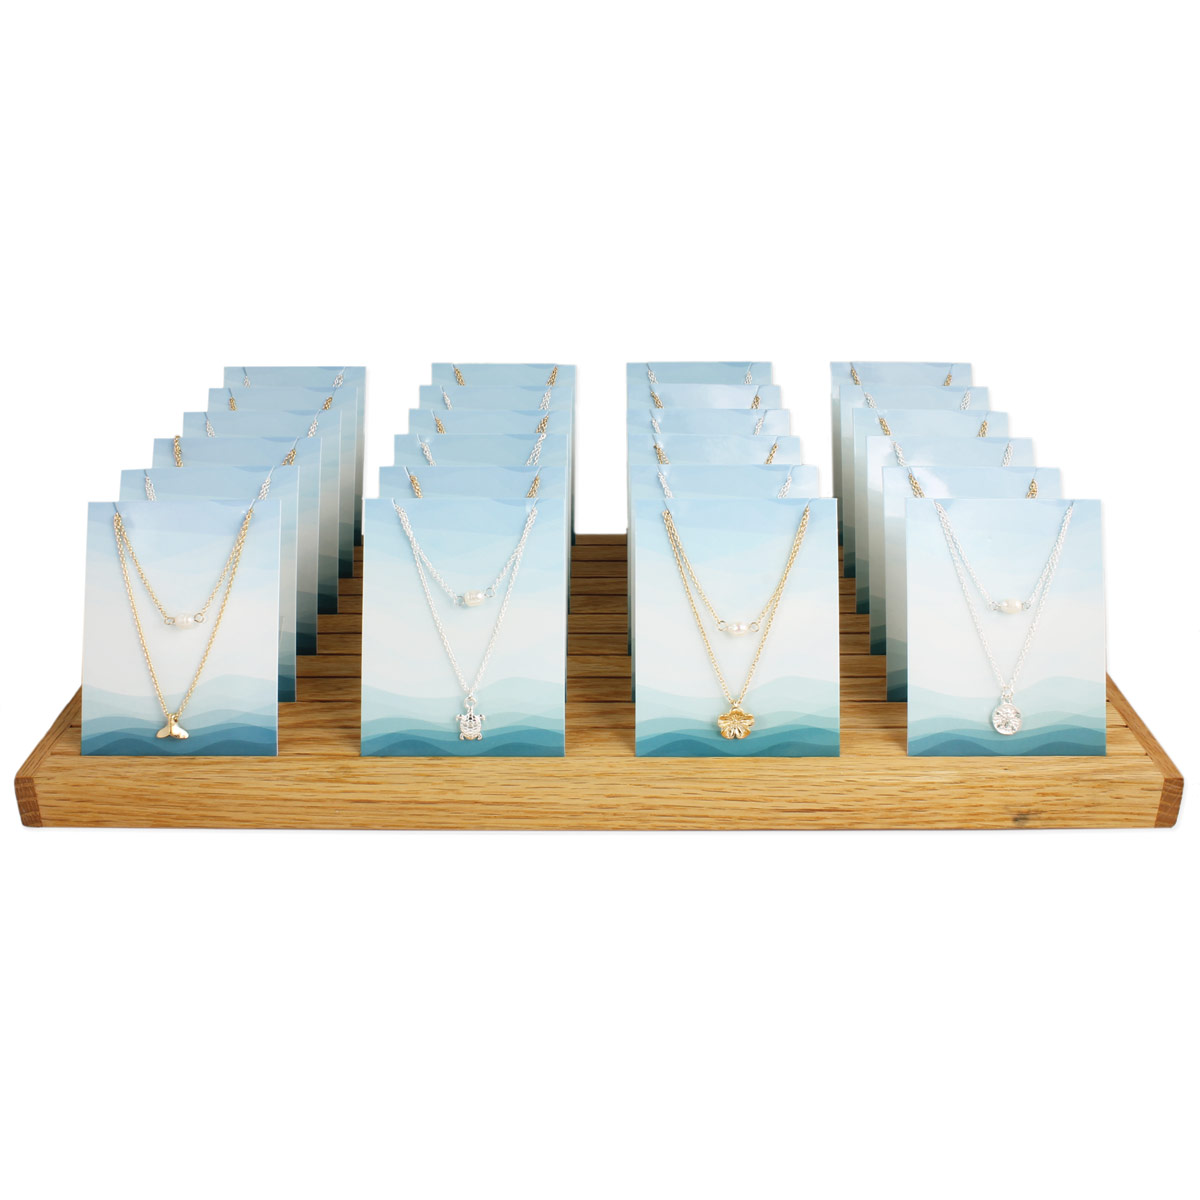 Ocean Necklaces in Wood Counter Display